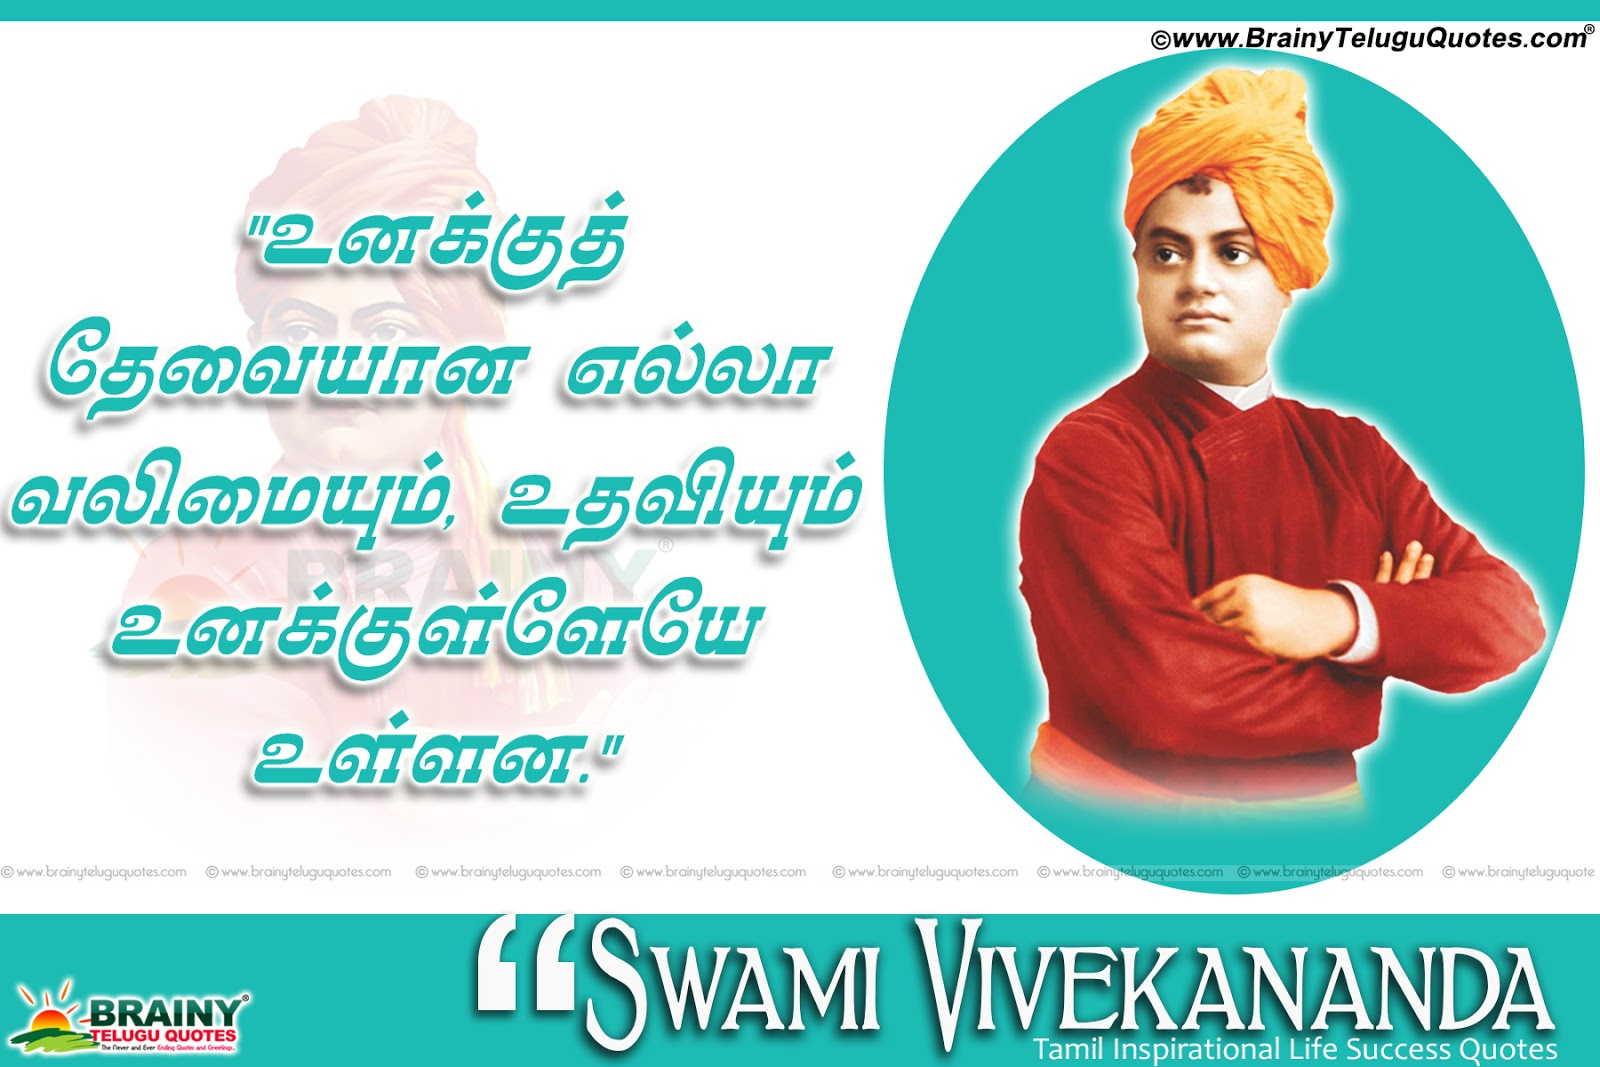 swami vivekananda tamil quotations images